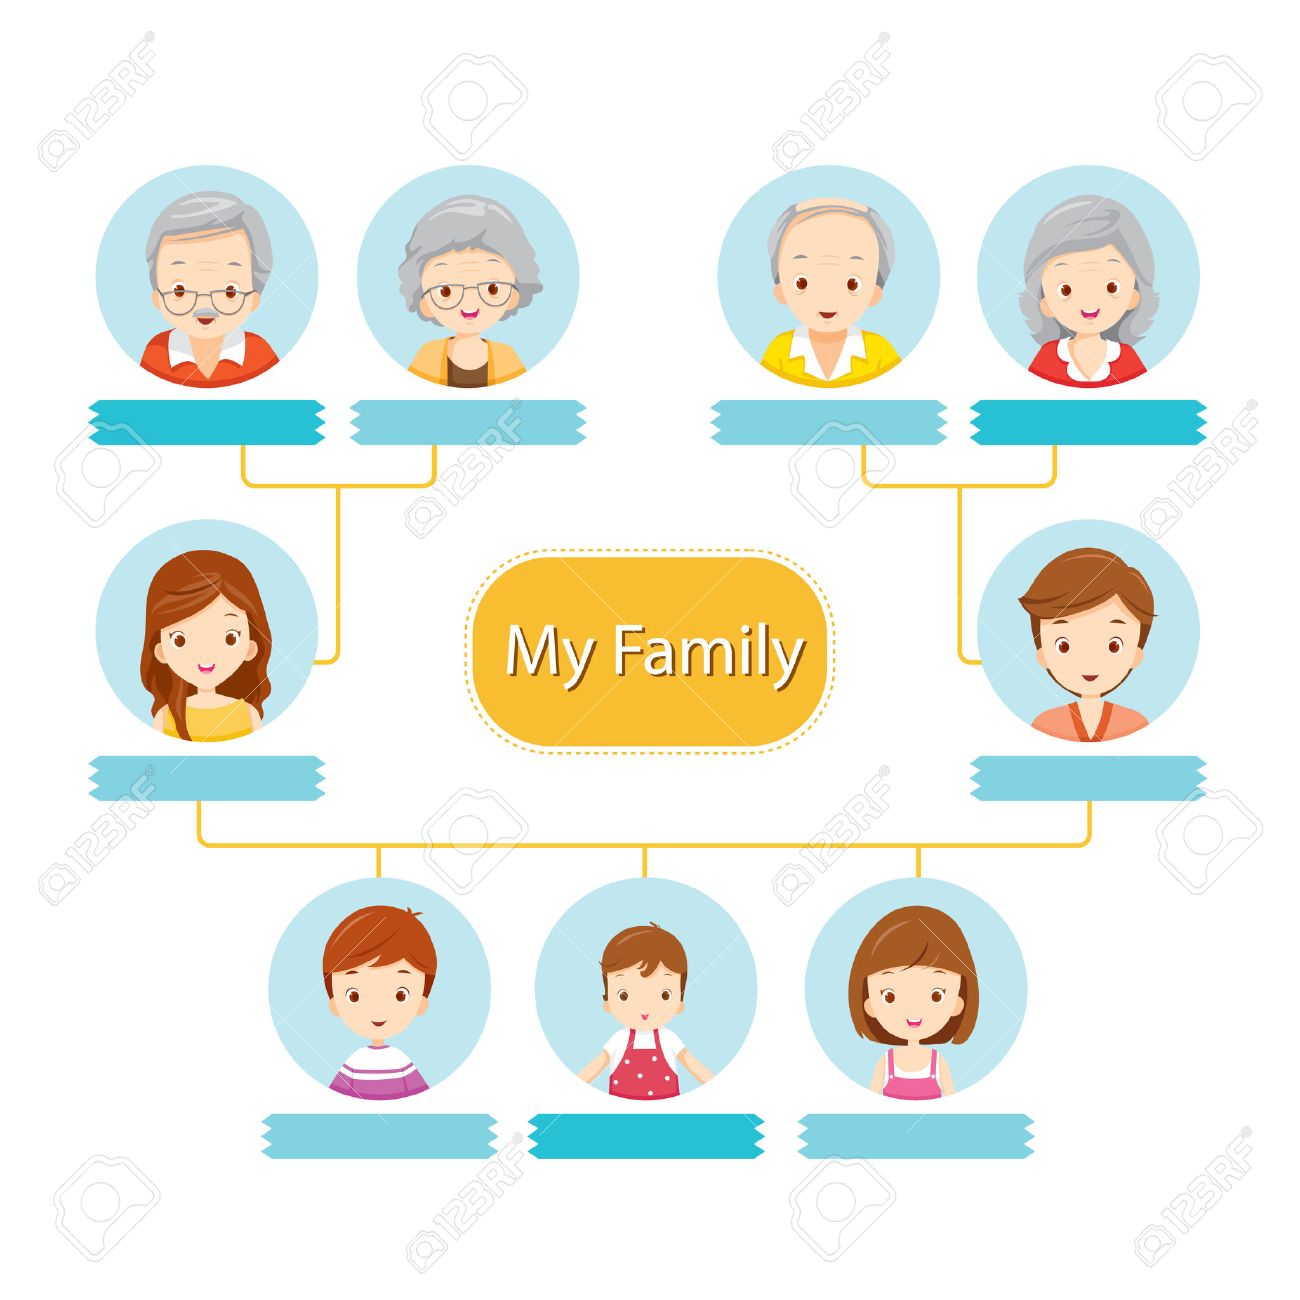 Happy family tree relationship togetherness infographic diagram happy family tree relationship togetherness infographic diagram lifestyle stock vector ccuart Choice Image